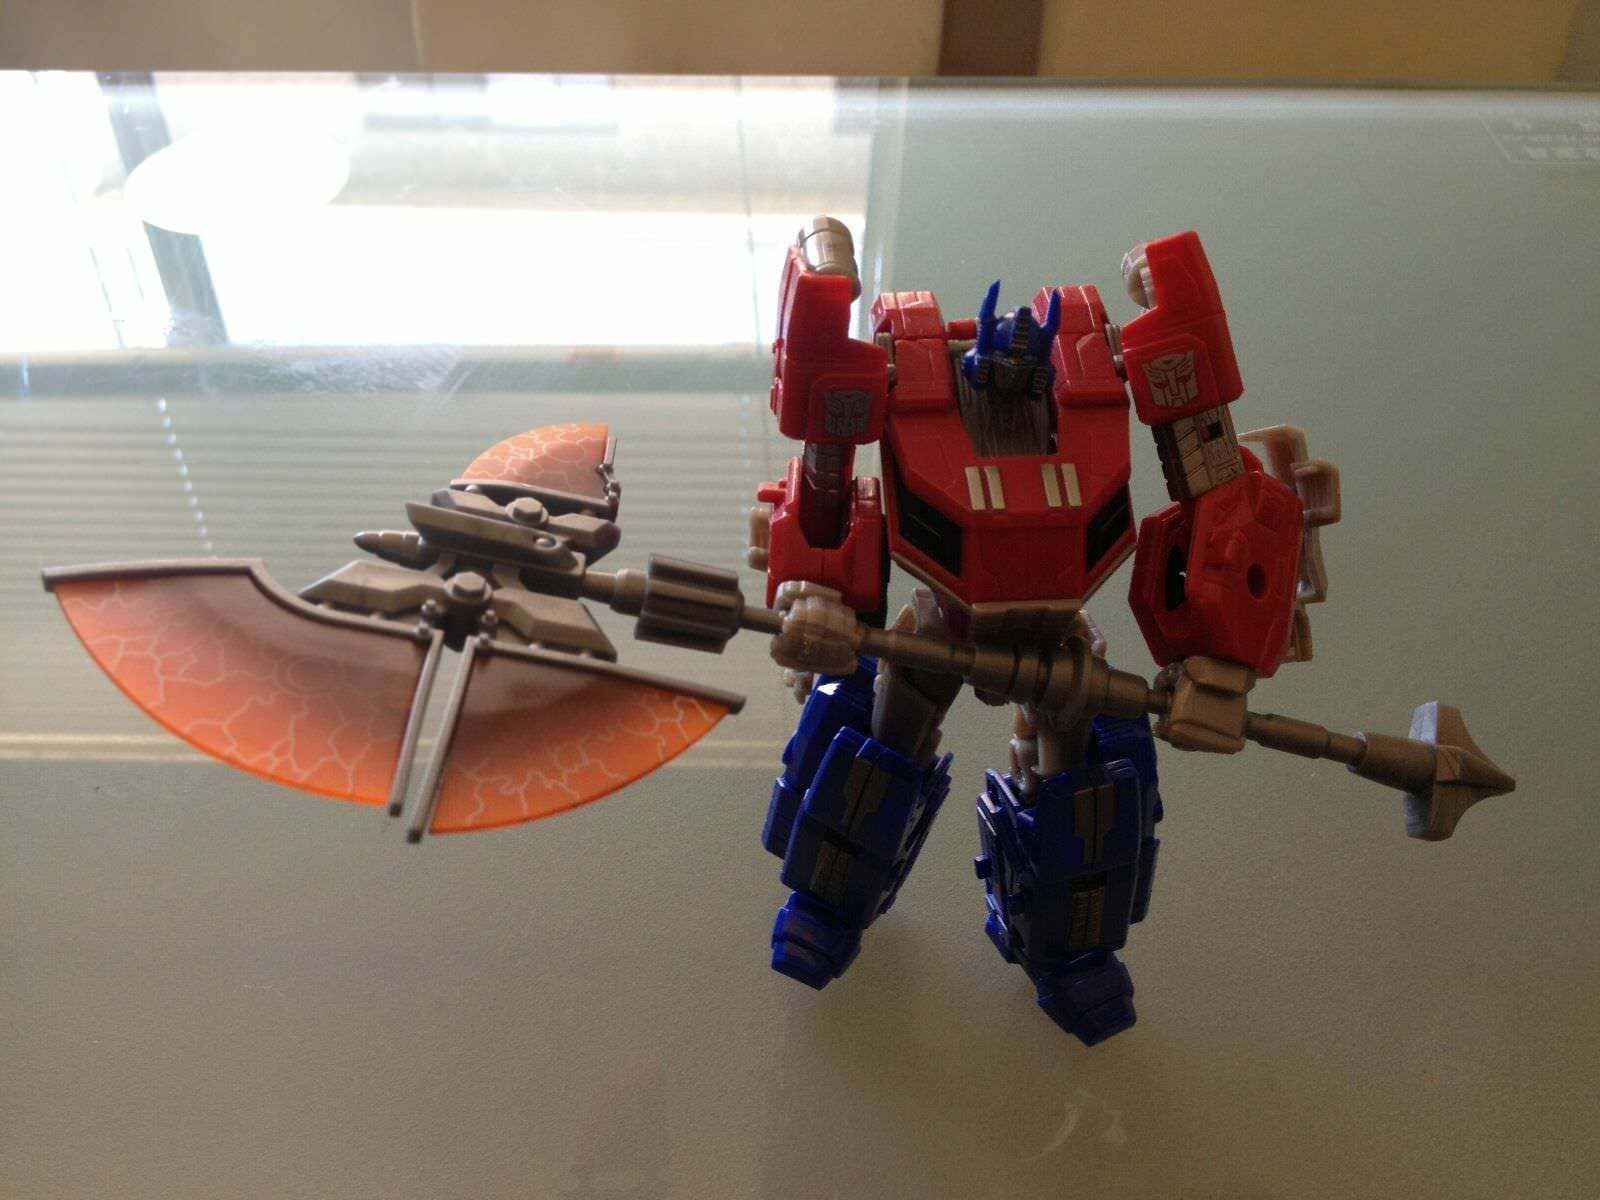 Transformers CORBOT CORBOT CORBOT V WAR AXE CV-001W FREE SHIPPING (US SELLER) 6ff04d